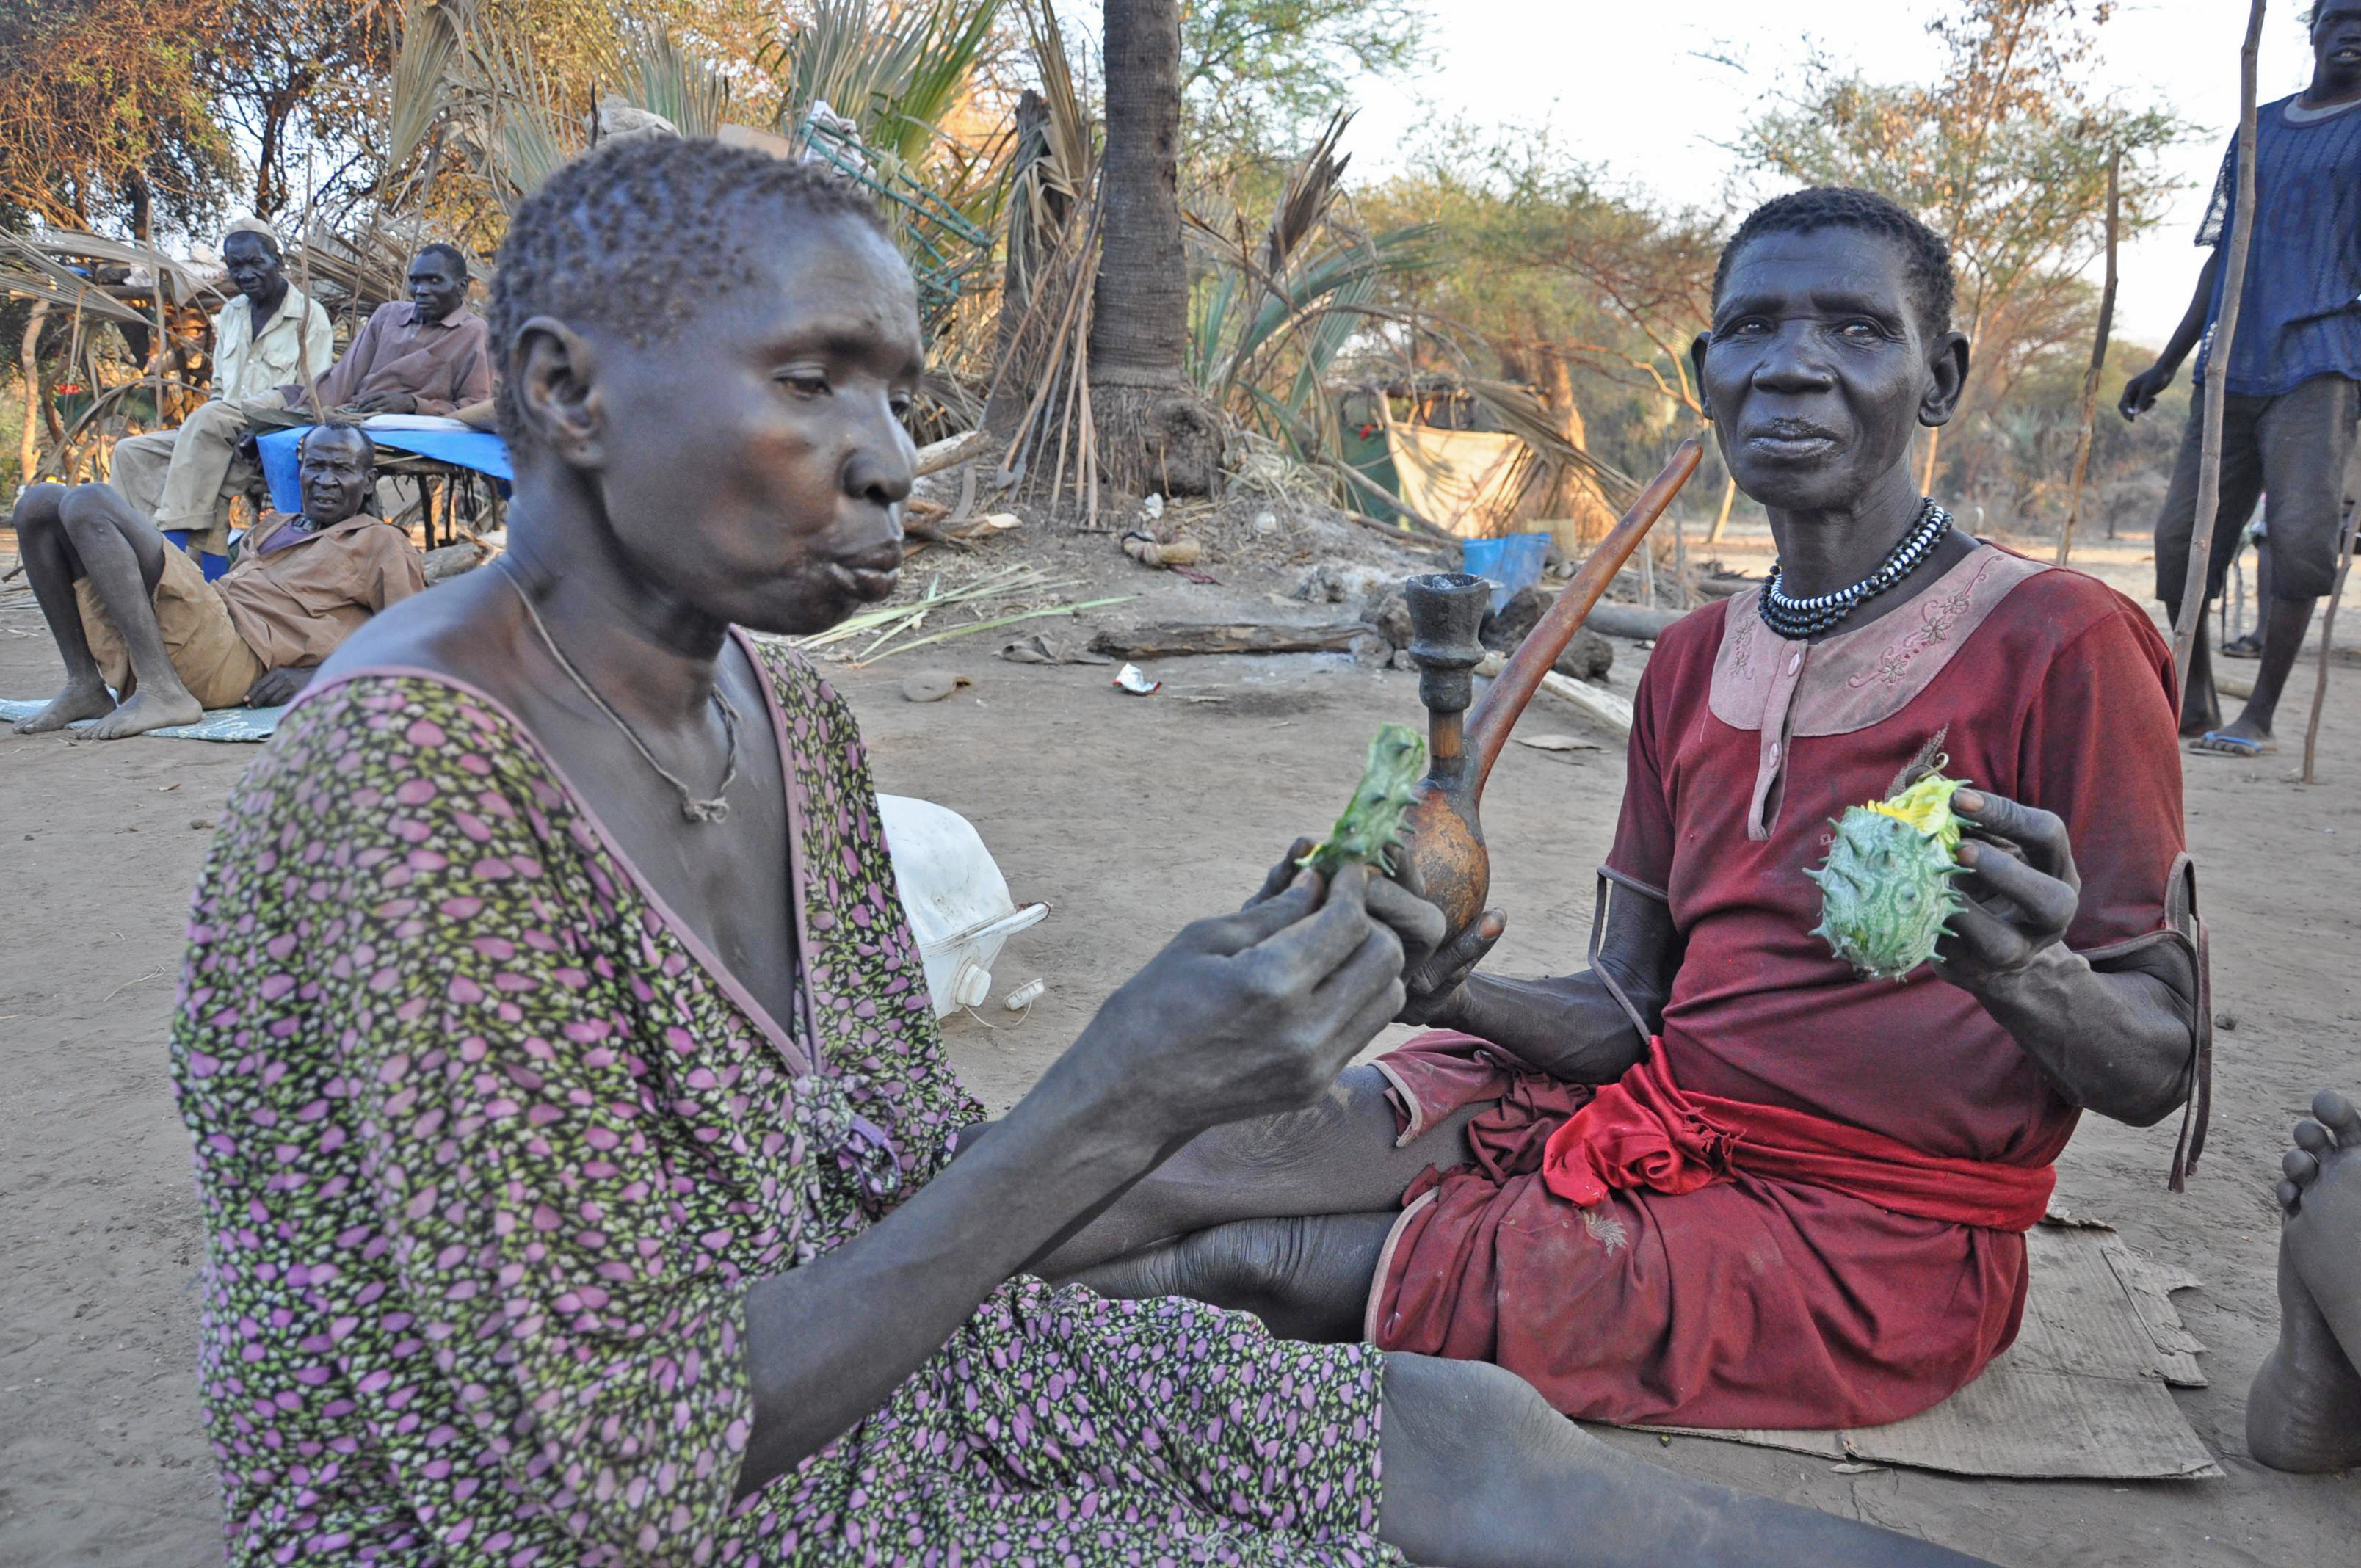 Refugees in South Sudan's Doro refugee camp supplement their diet with spiny cactus